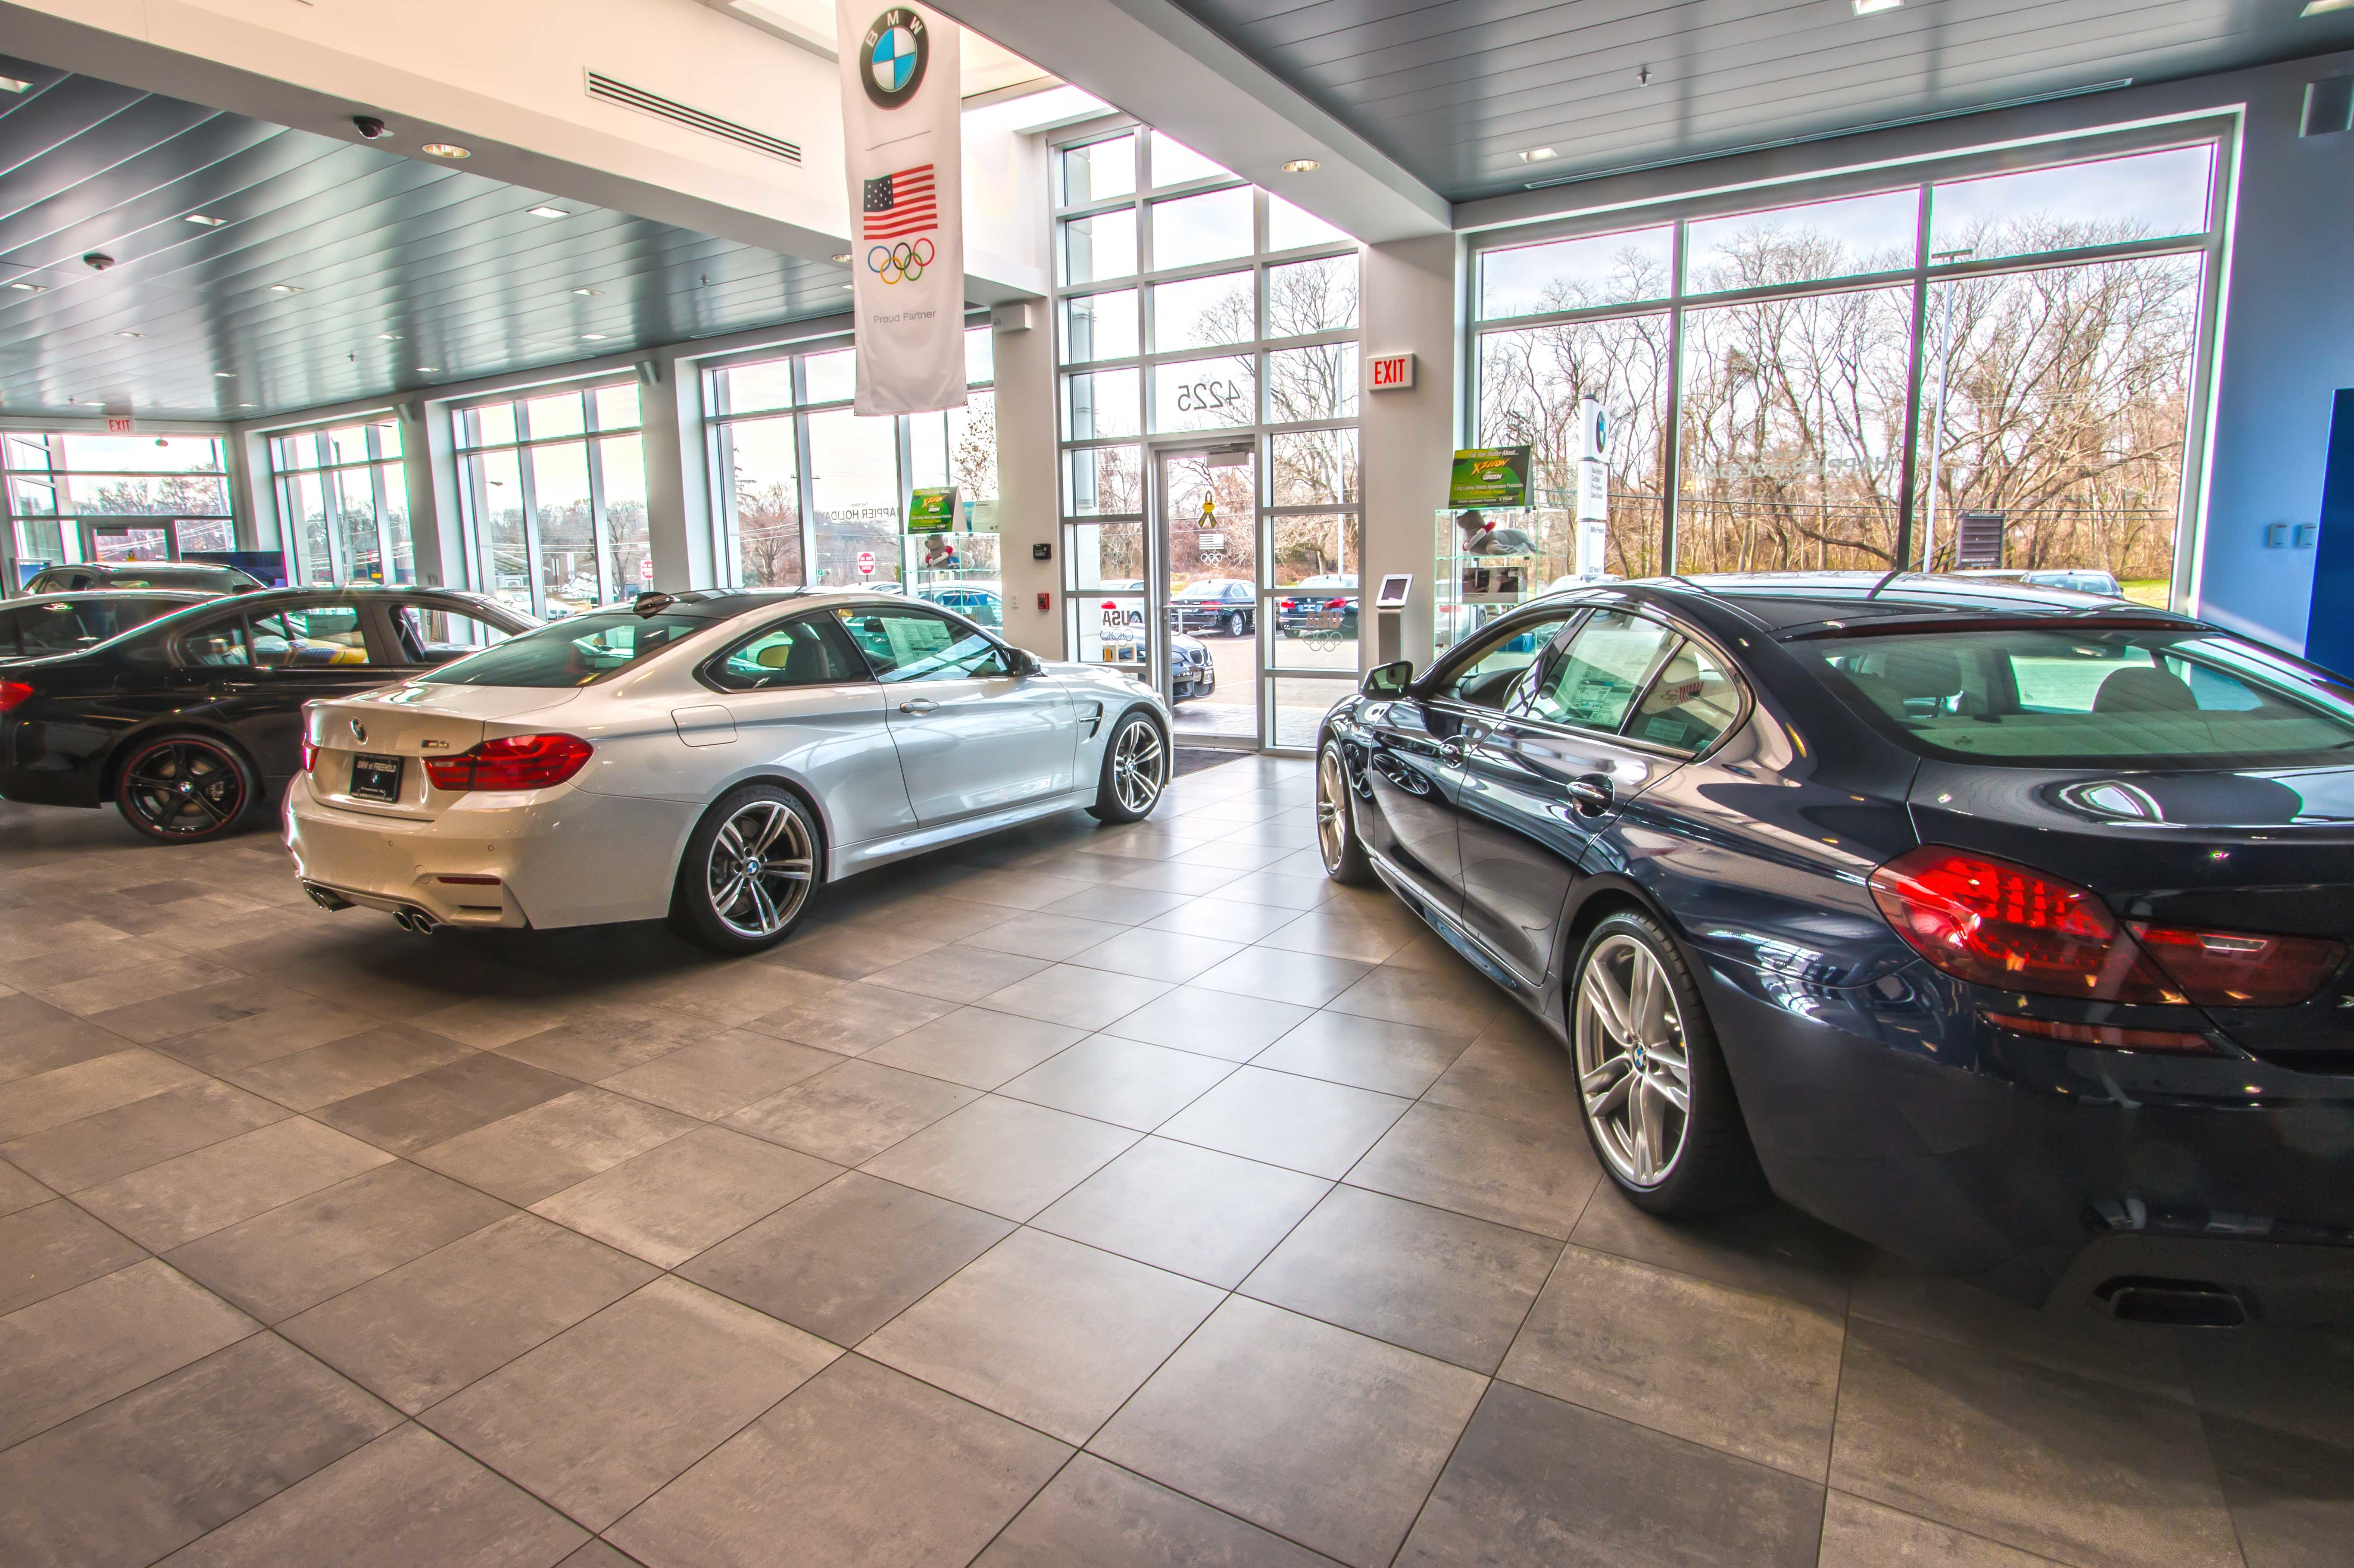 Bmw of freehold bmw service center autos post for Freehold motor vehicle agency